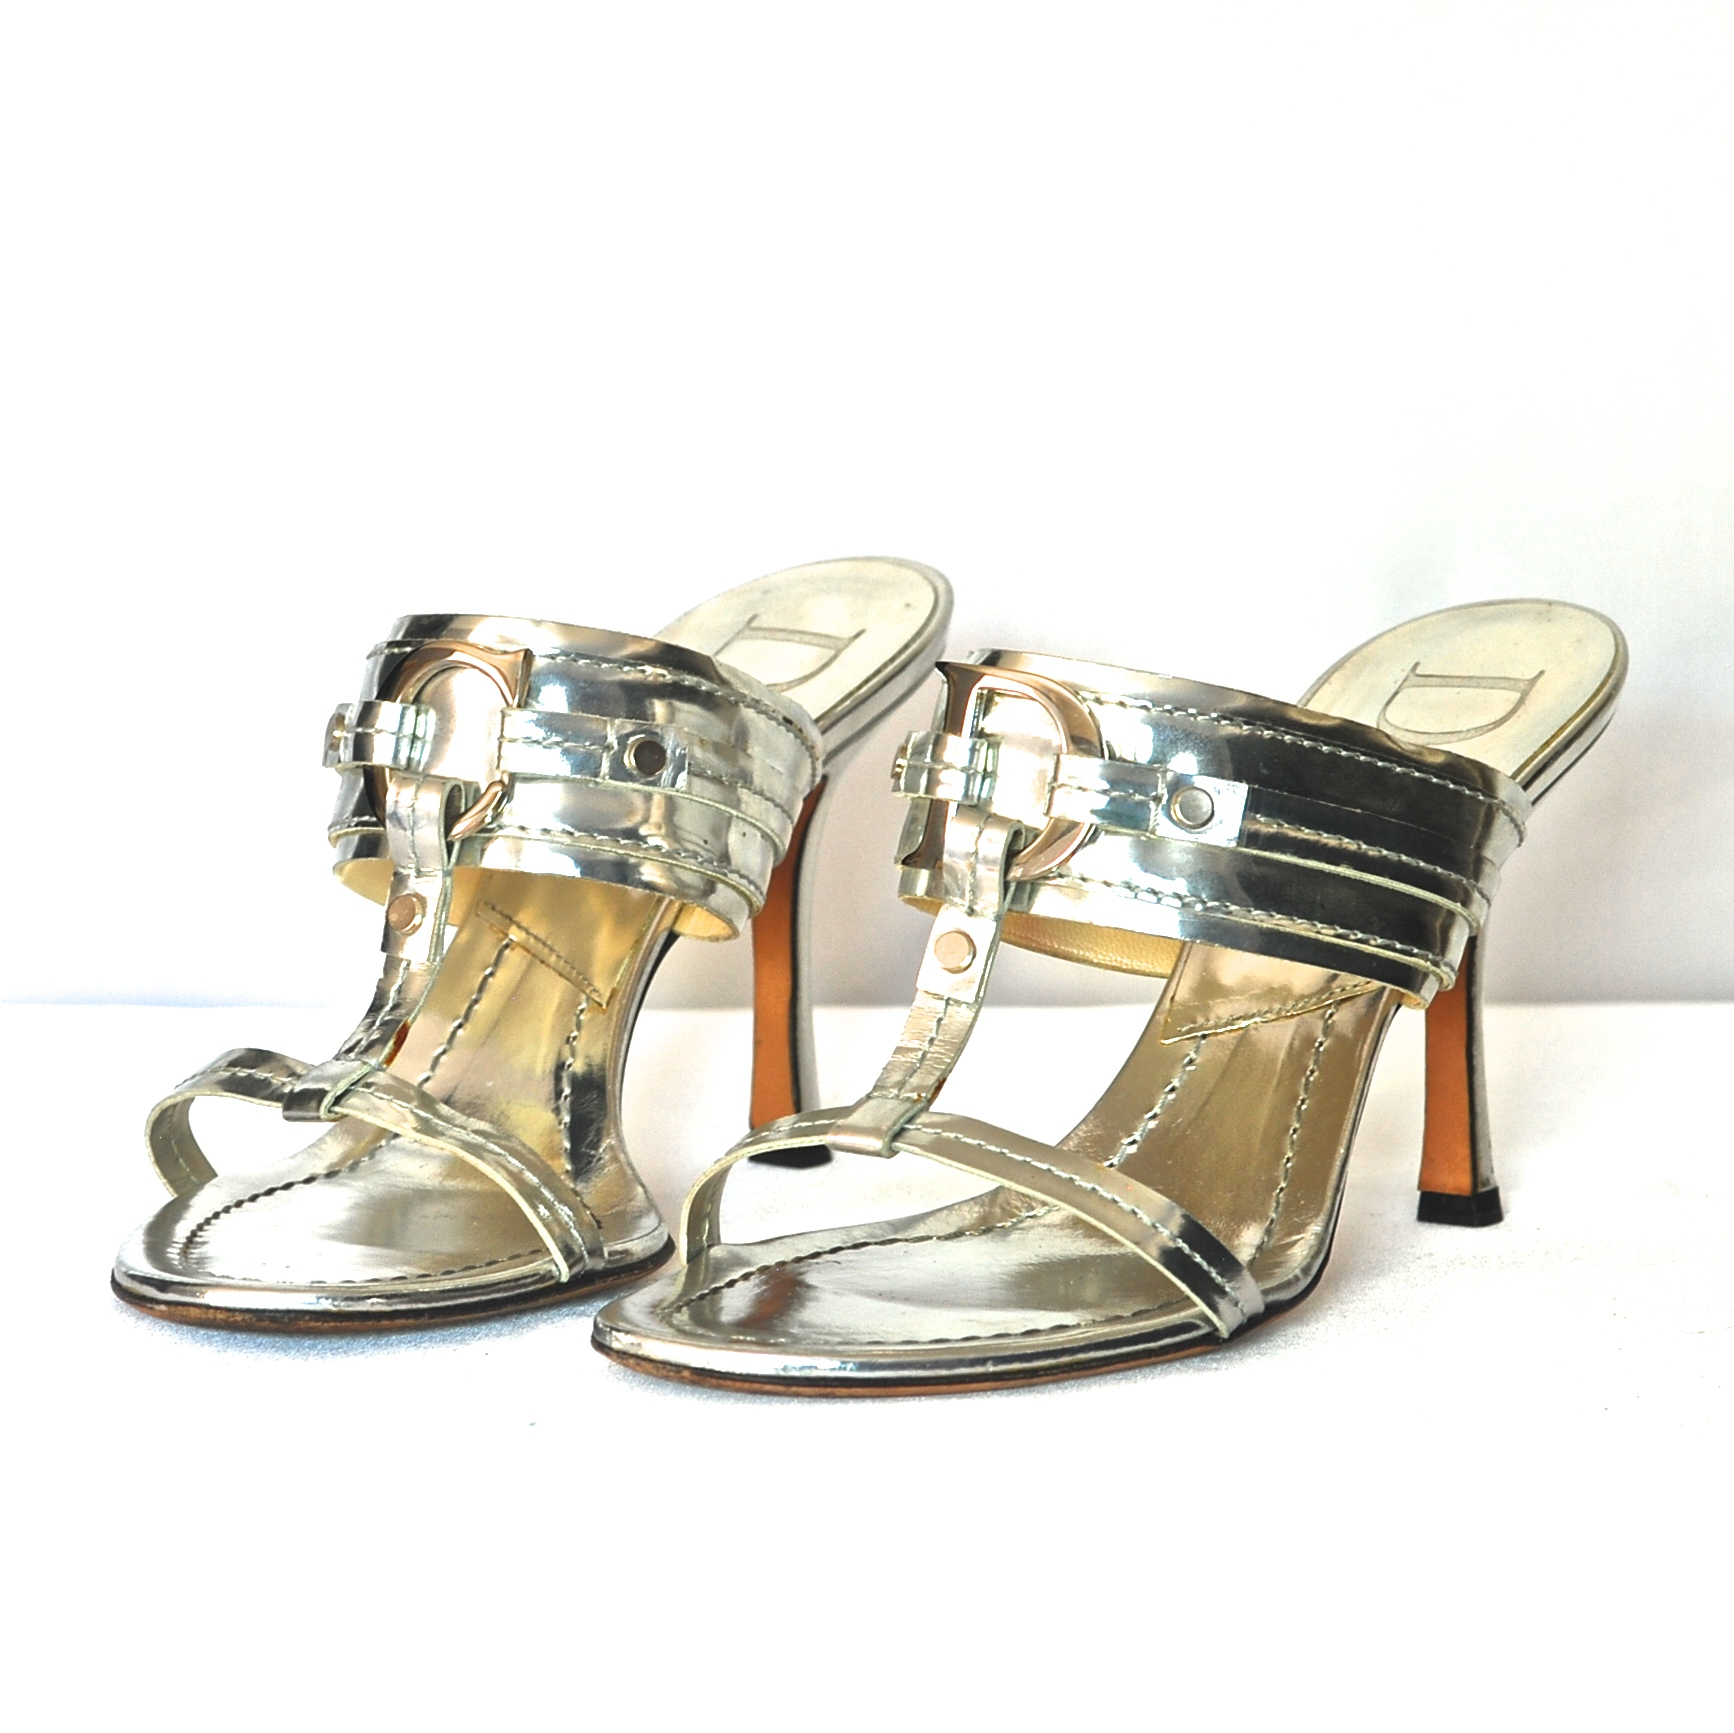 dd2661b7d2 Christian Dior Silver Evening Shoes With CD Monogram – Italy | QUIET ...